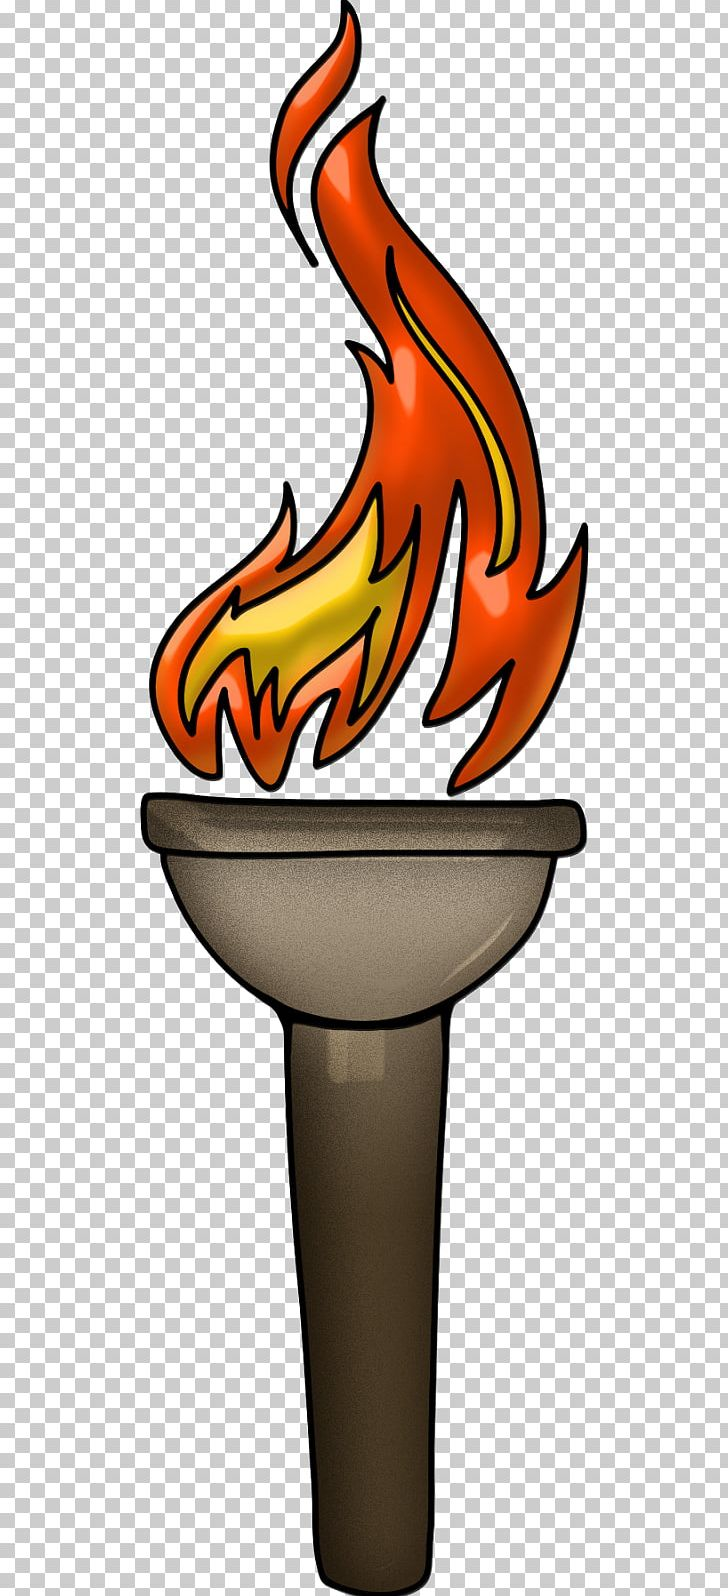 Olympic Games 2018 Winter Olympics Torch Relay PNG, Clipart, 2018.